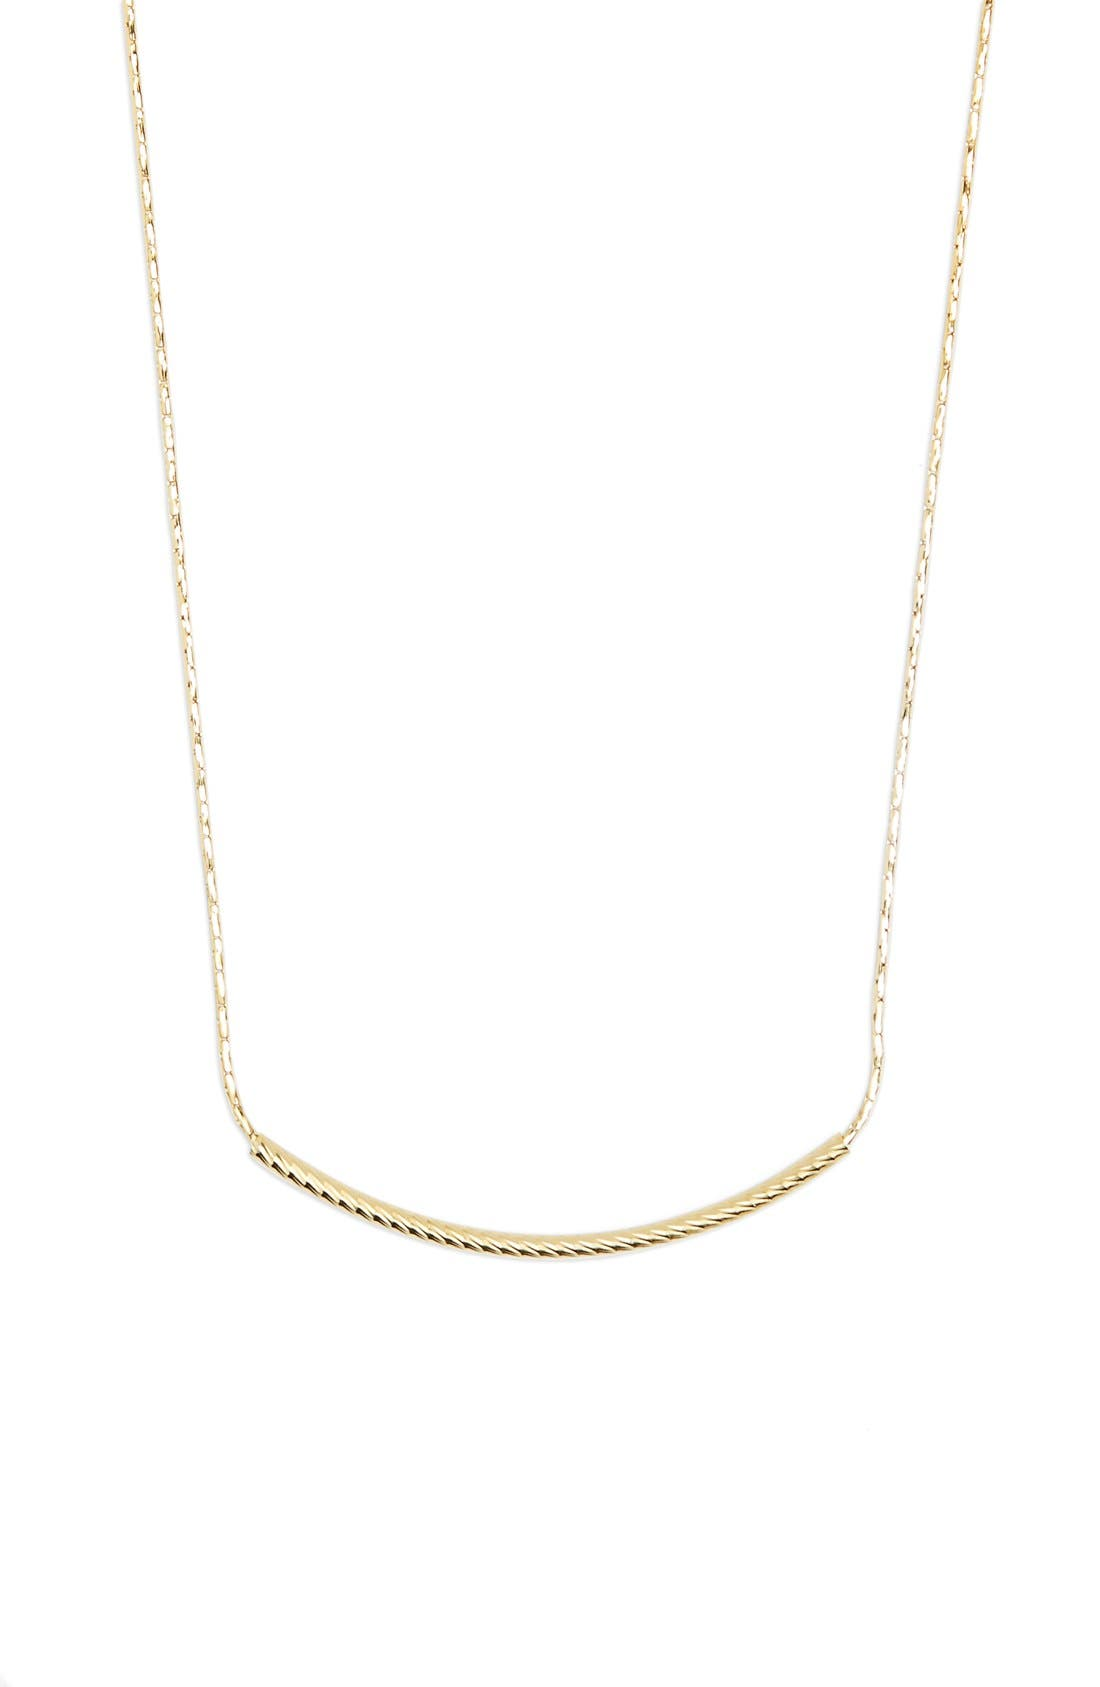 14kGold Curved Bar Necklace,                             Main thumbnail 1, color,                             710